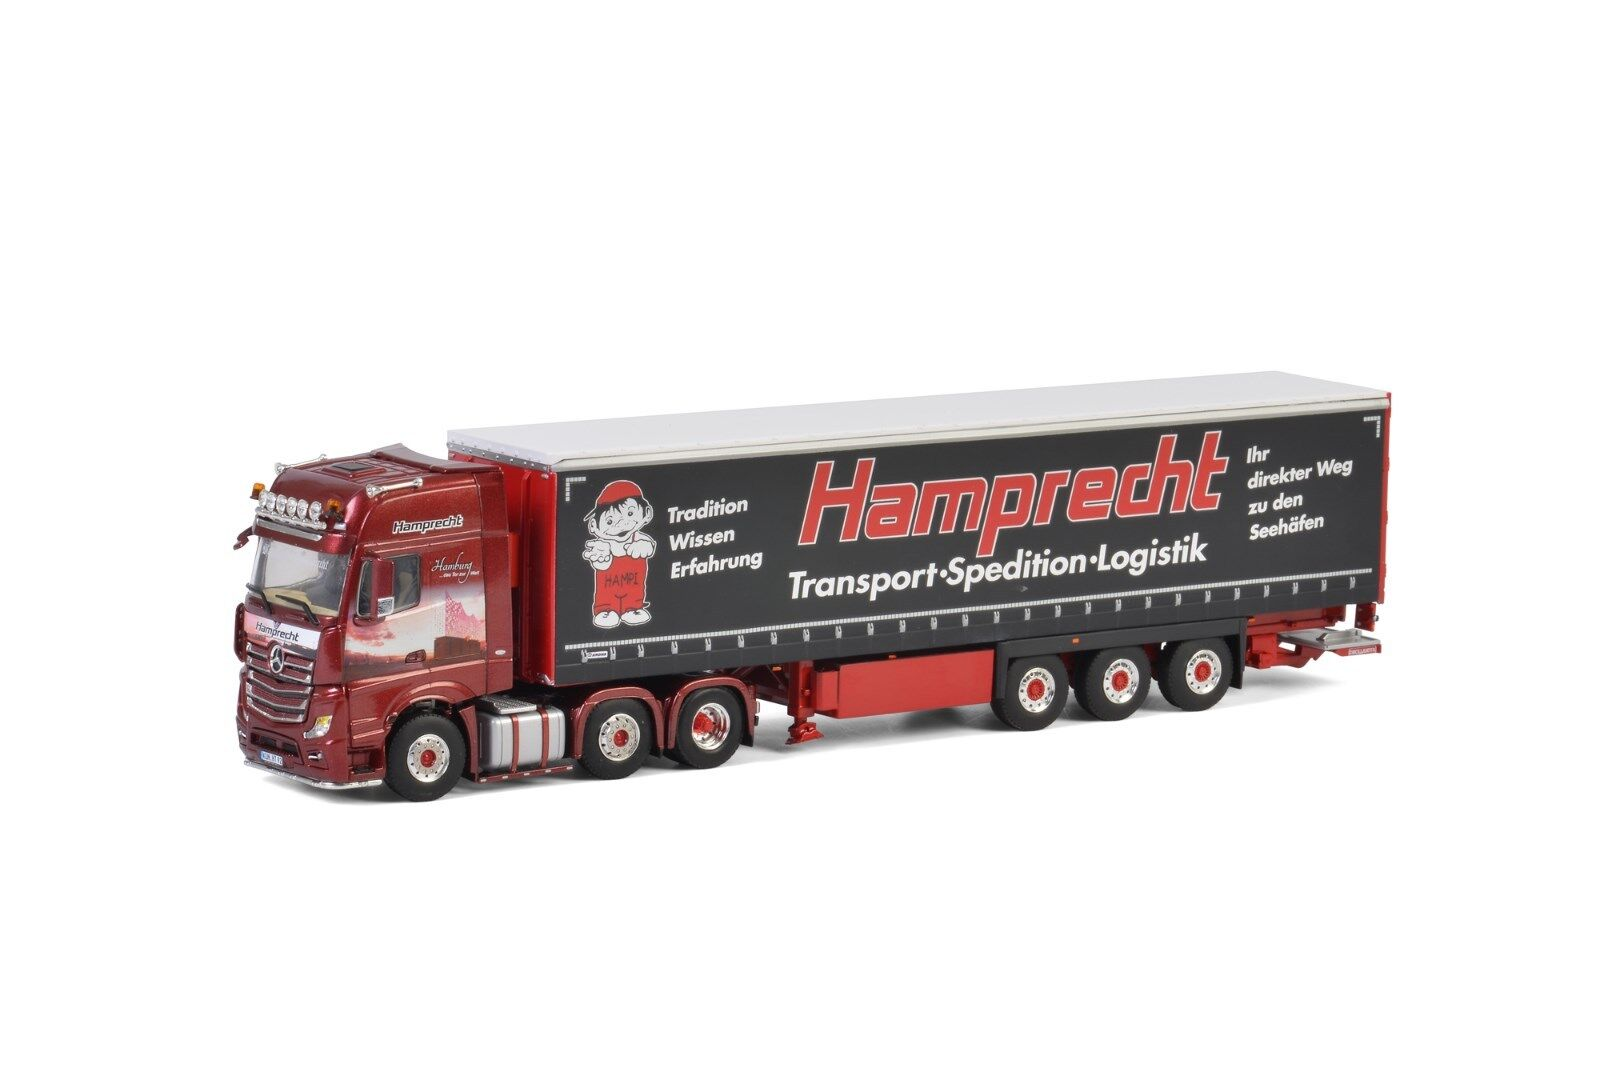 Angebot=WSI=MB Actros MP4 Giga Space 6x2 Zwillingslenker + Curtain Side Trailer